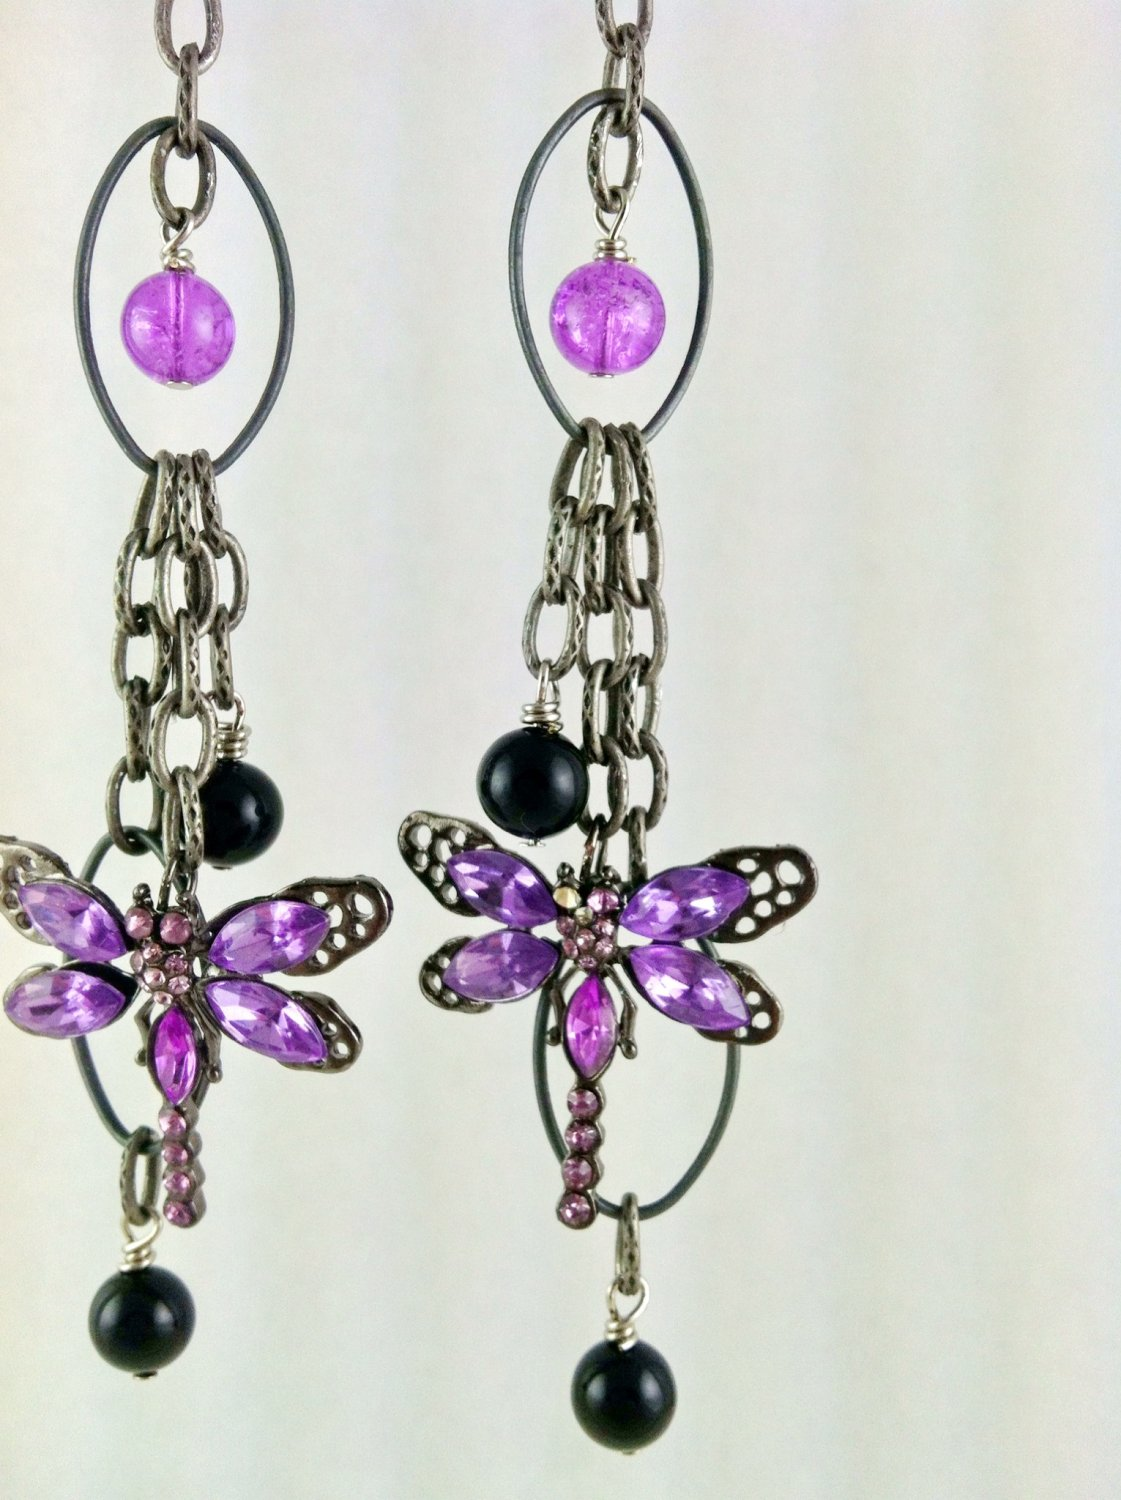 Dragonfly Earrings Dark Silver with Purple and Black